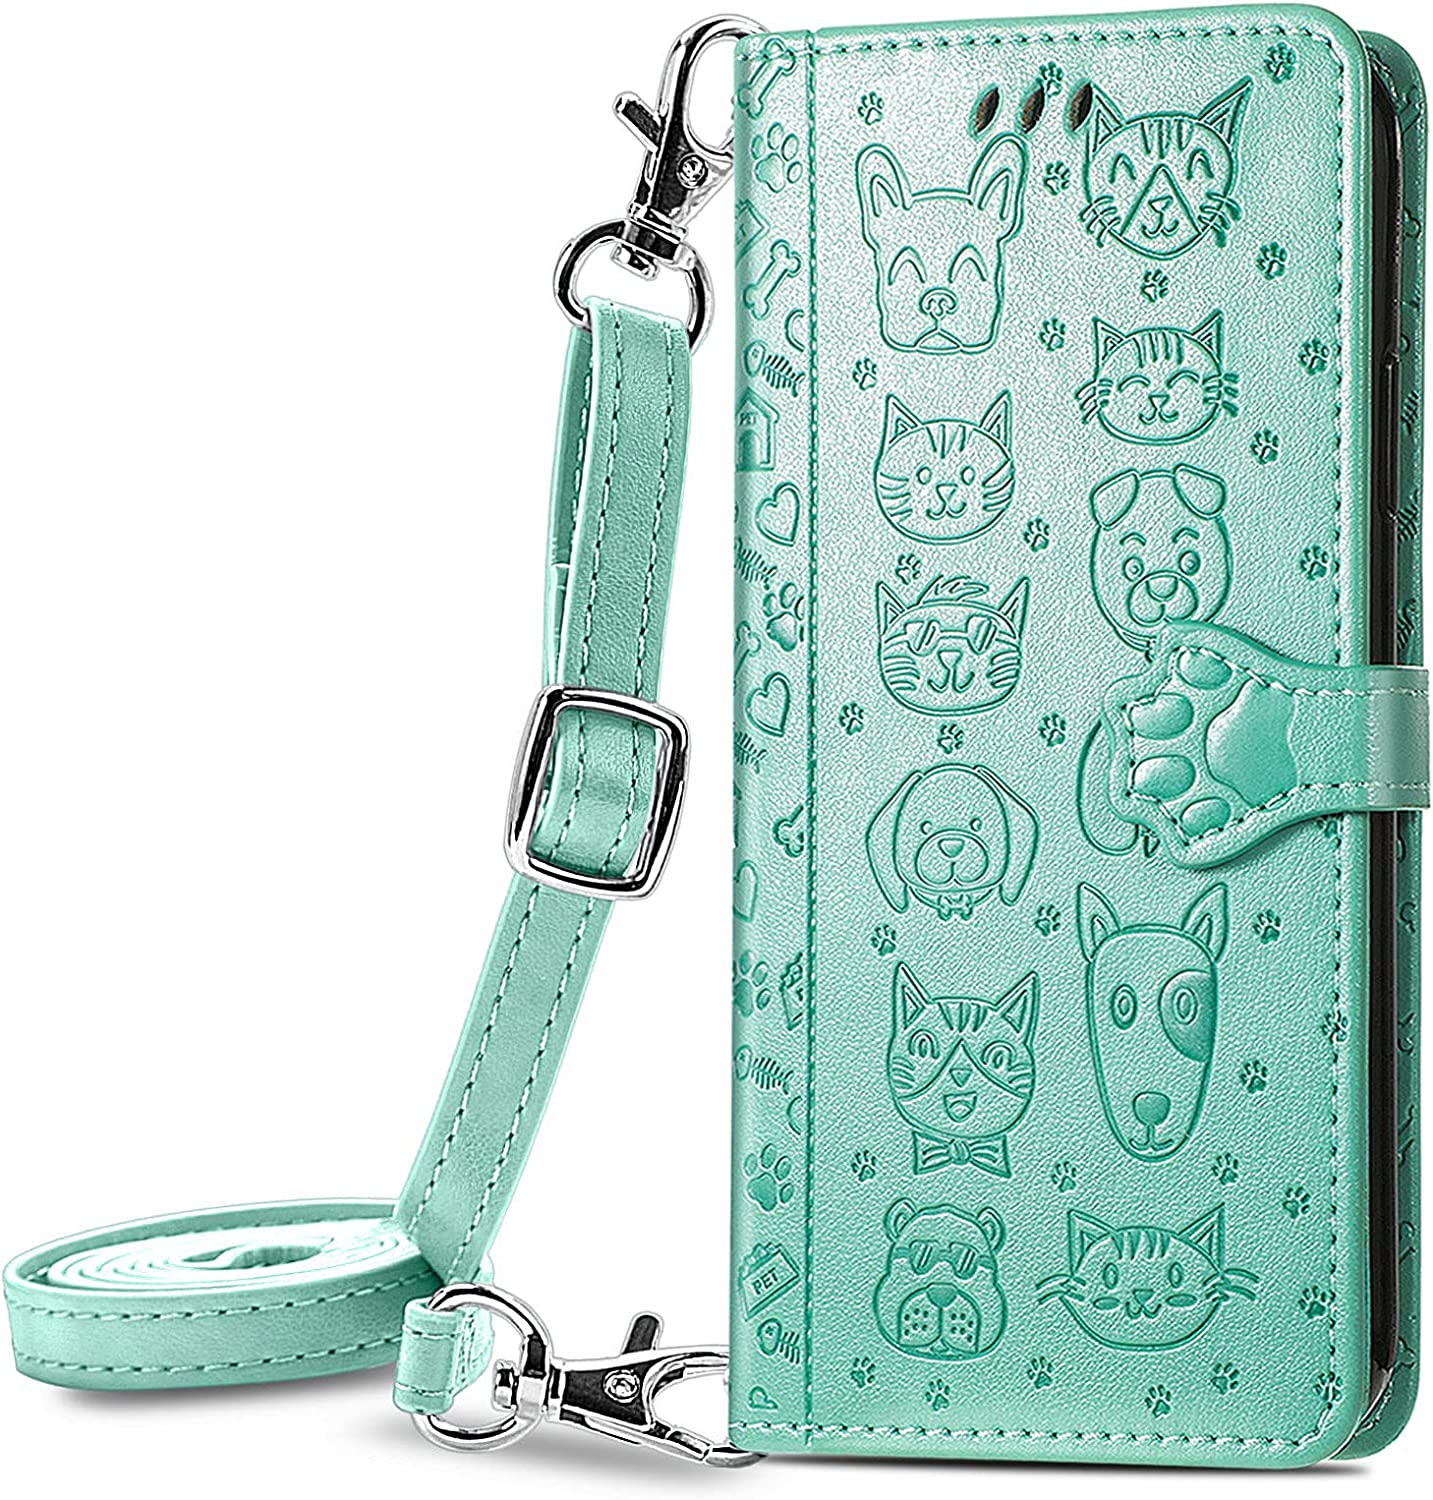 DAMONDY Case for Xiaomi Redmi Note 10 Pro,Cute Cat Kickstand Credit Card Holder Lanyard Strap for Women & Men, PU Leather Purse Cases with Clasp Phone Case for Redmi Note 10 Pro Max -Green